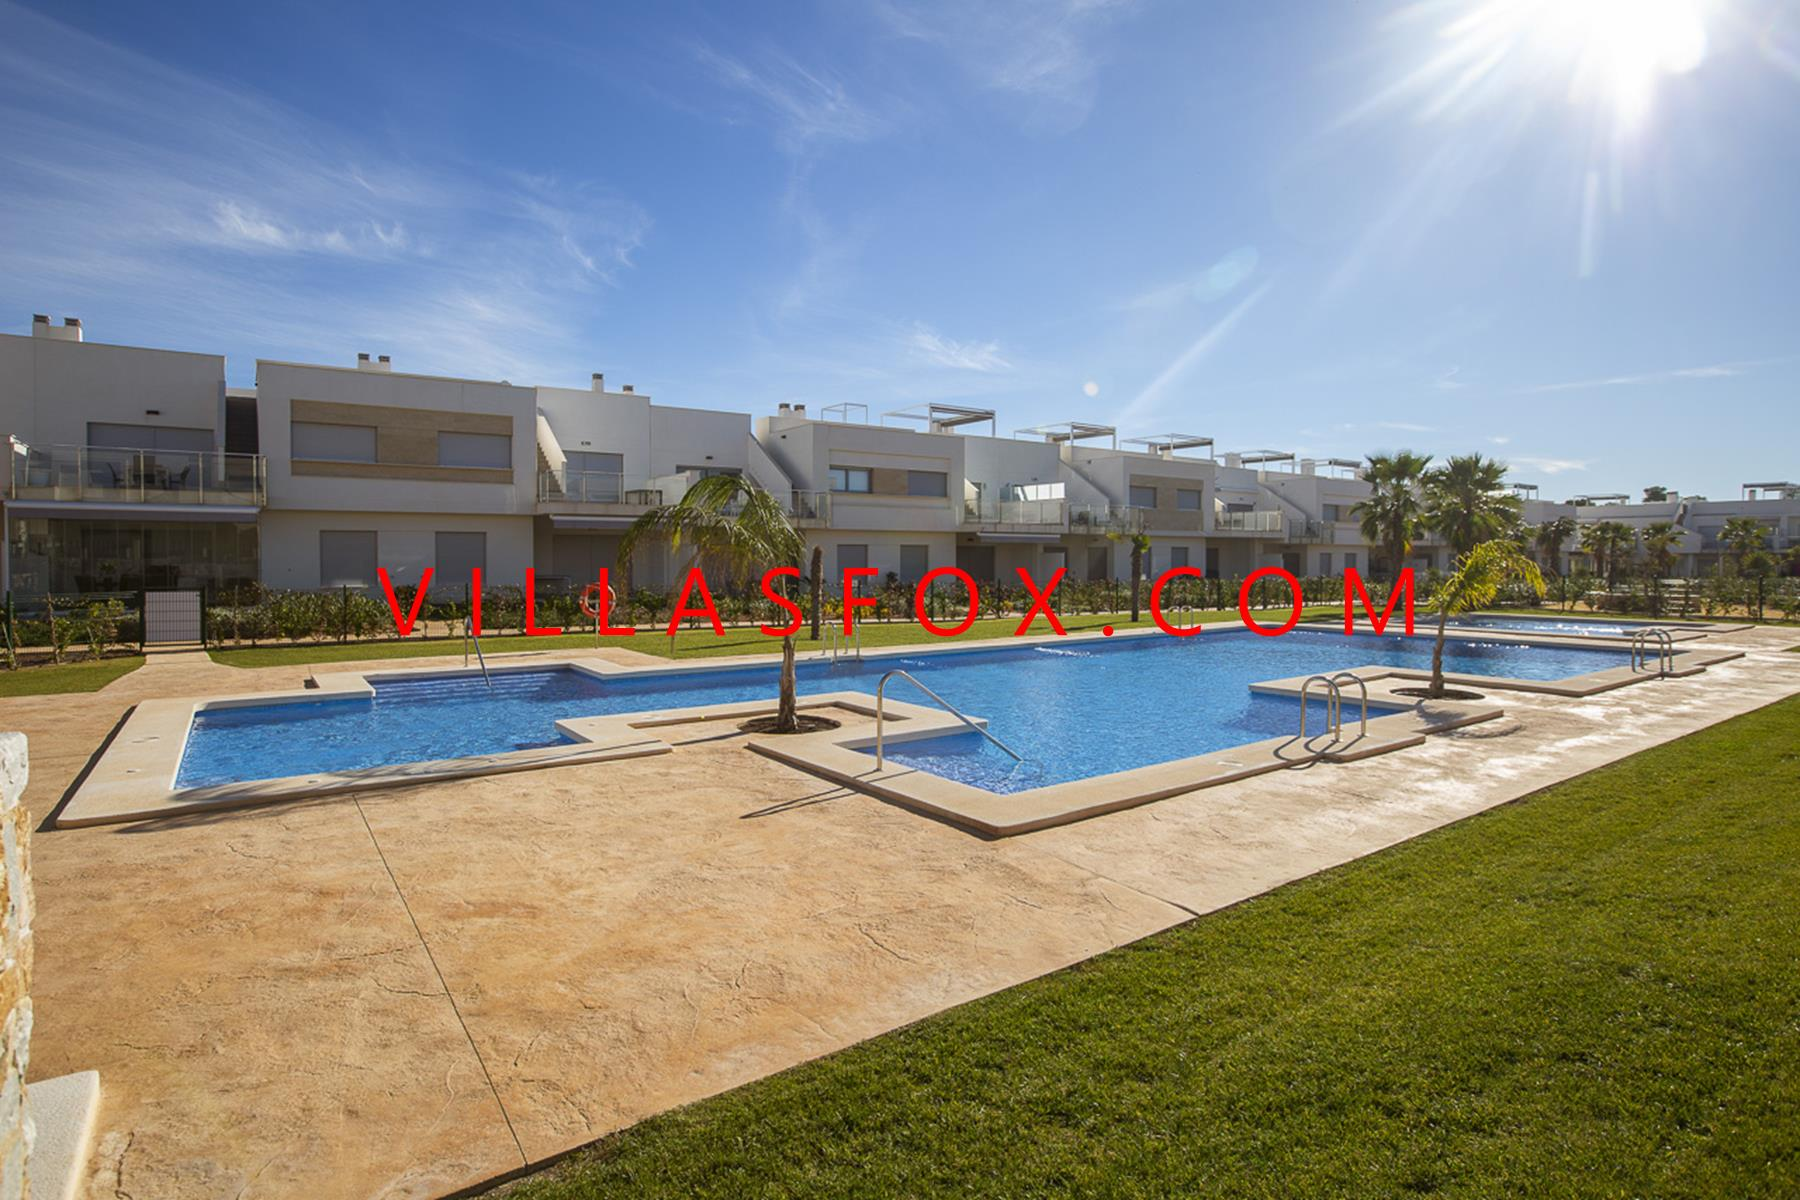 Luxury golf apartments at affordable prices close to bars and restaurants